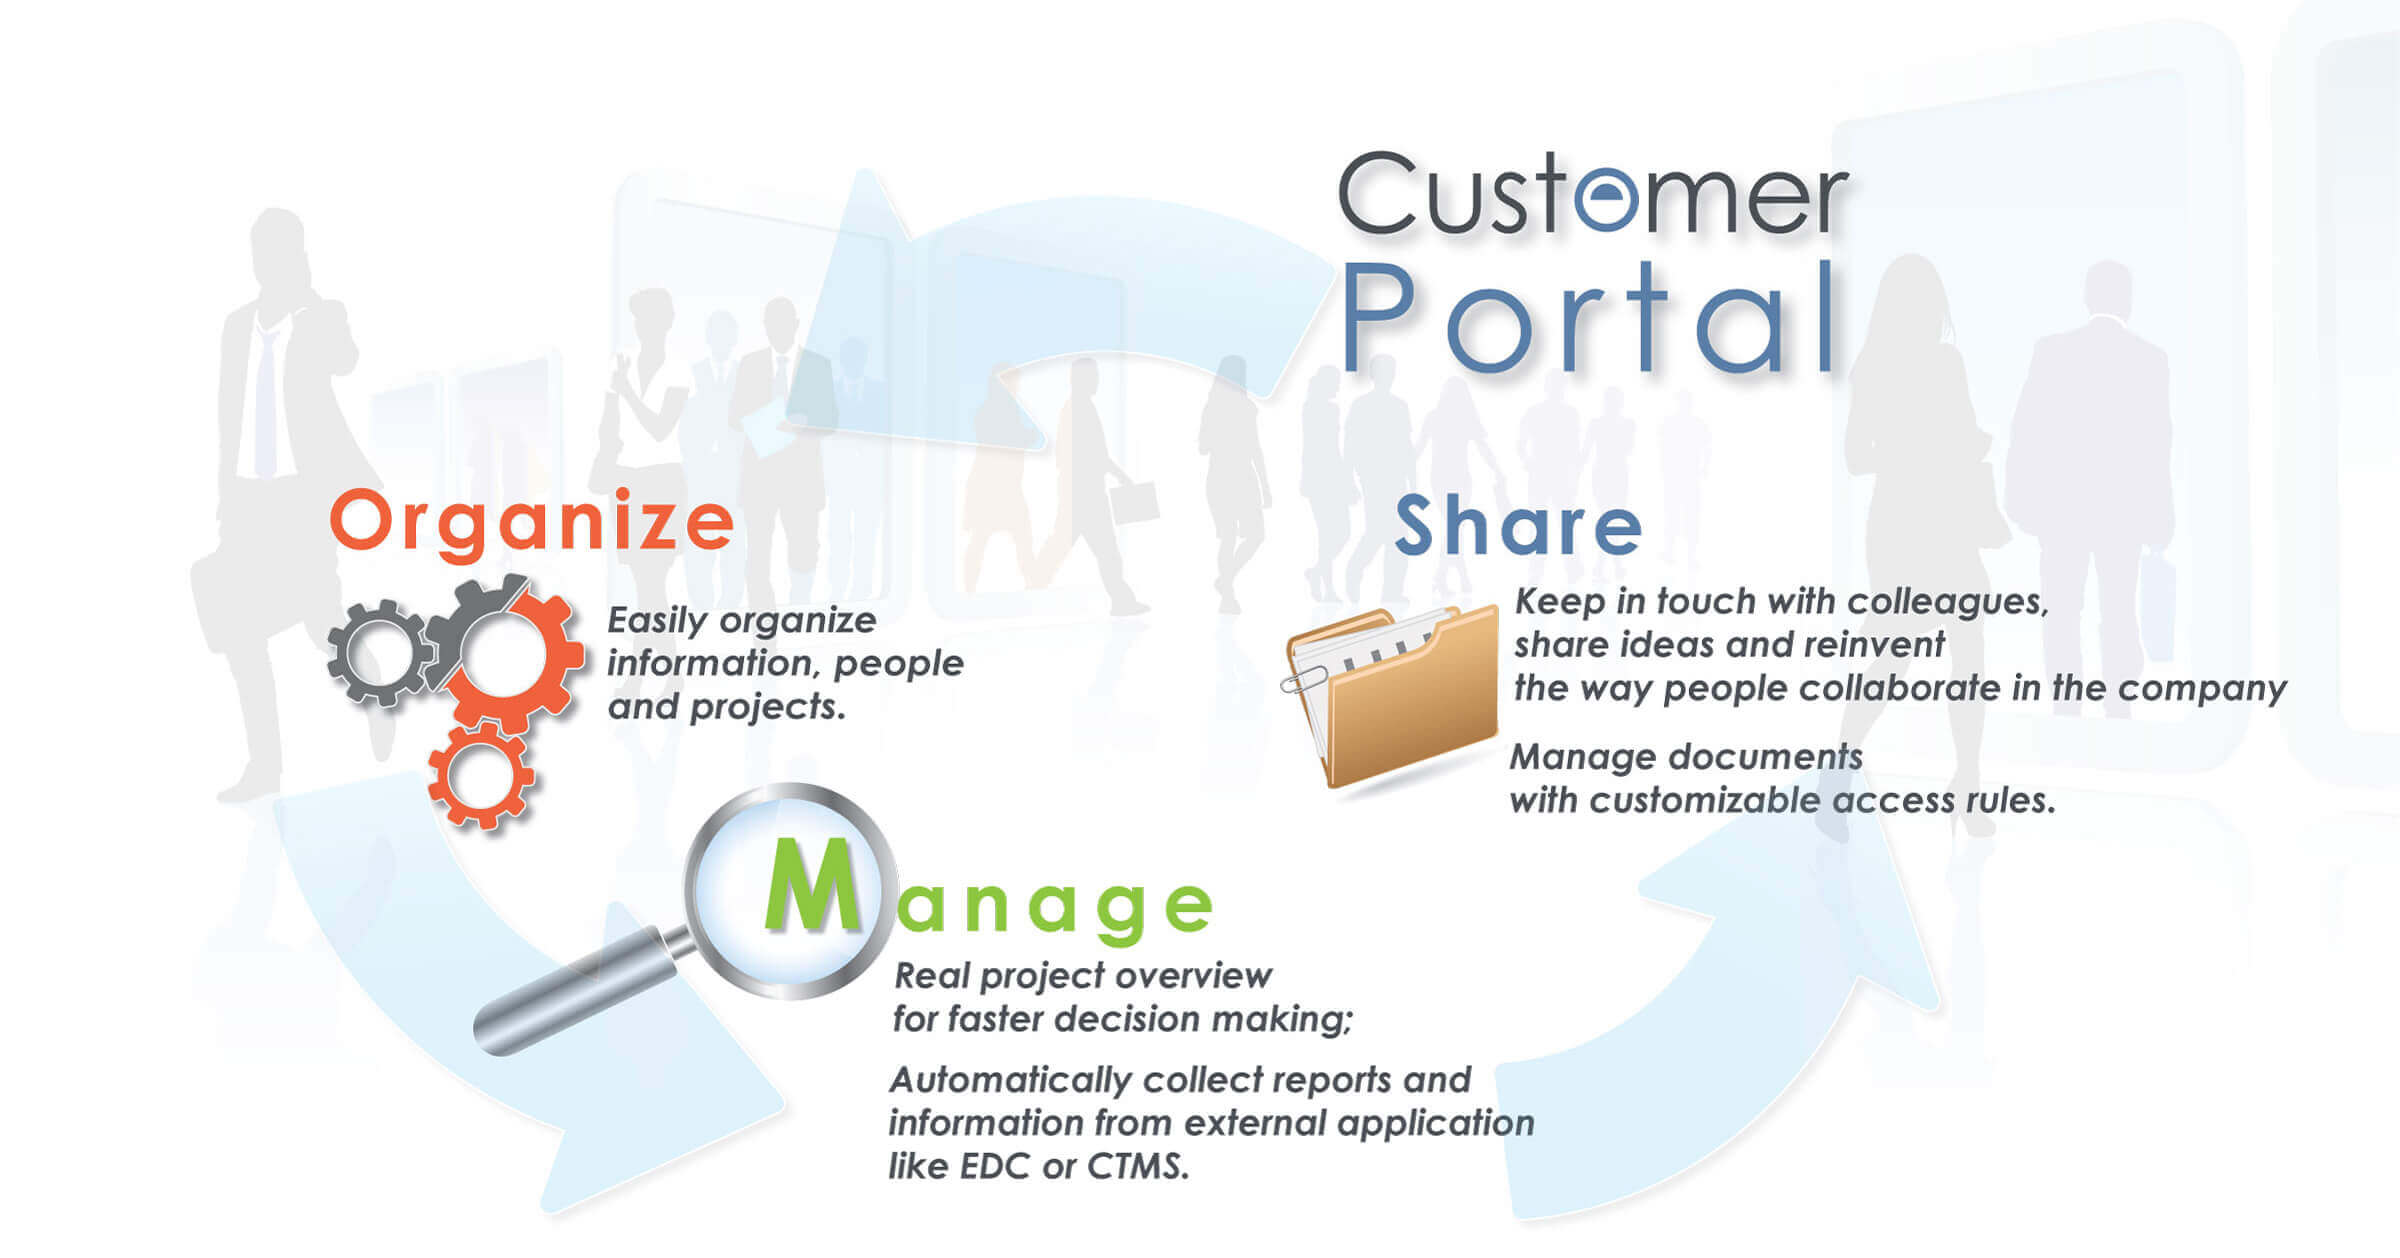 Techorizon Customer Portal infographic